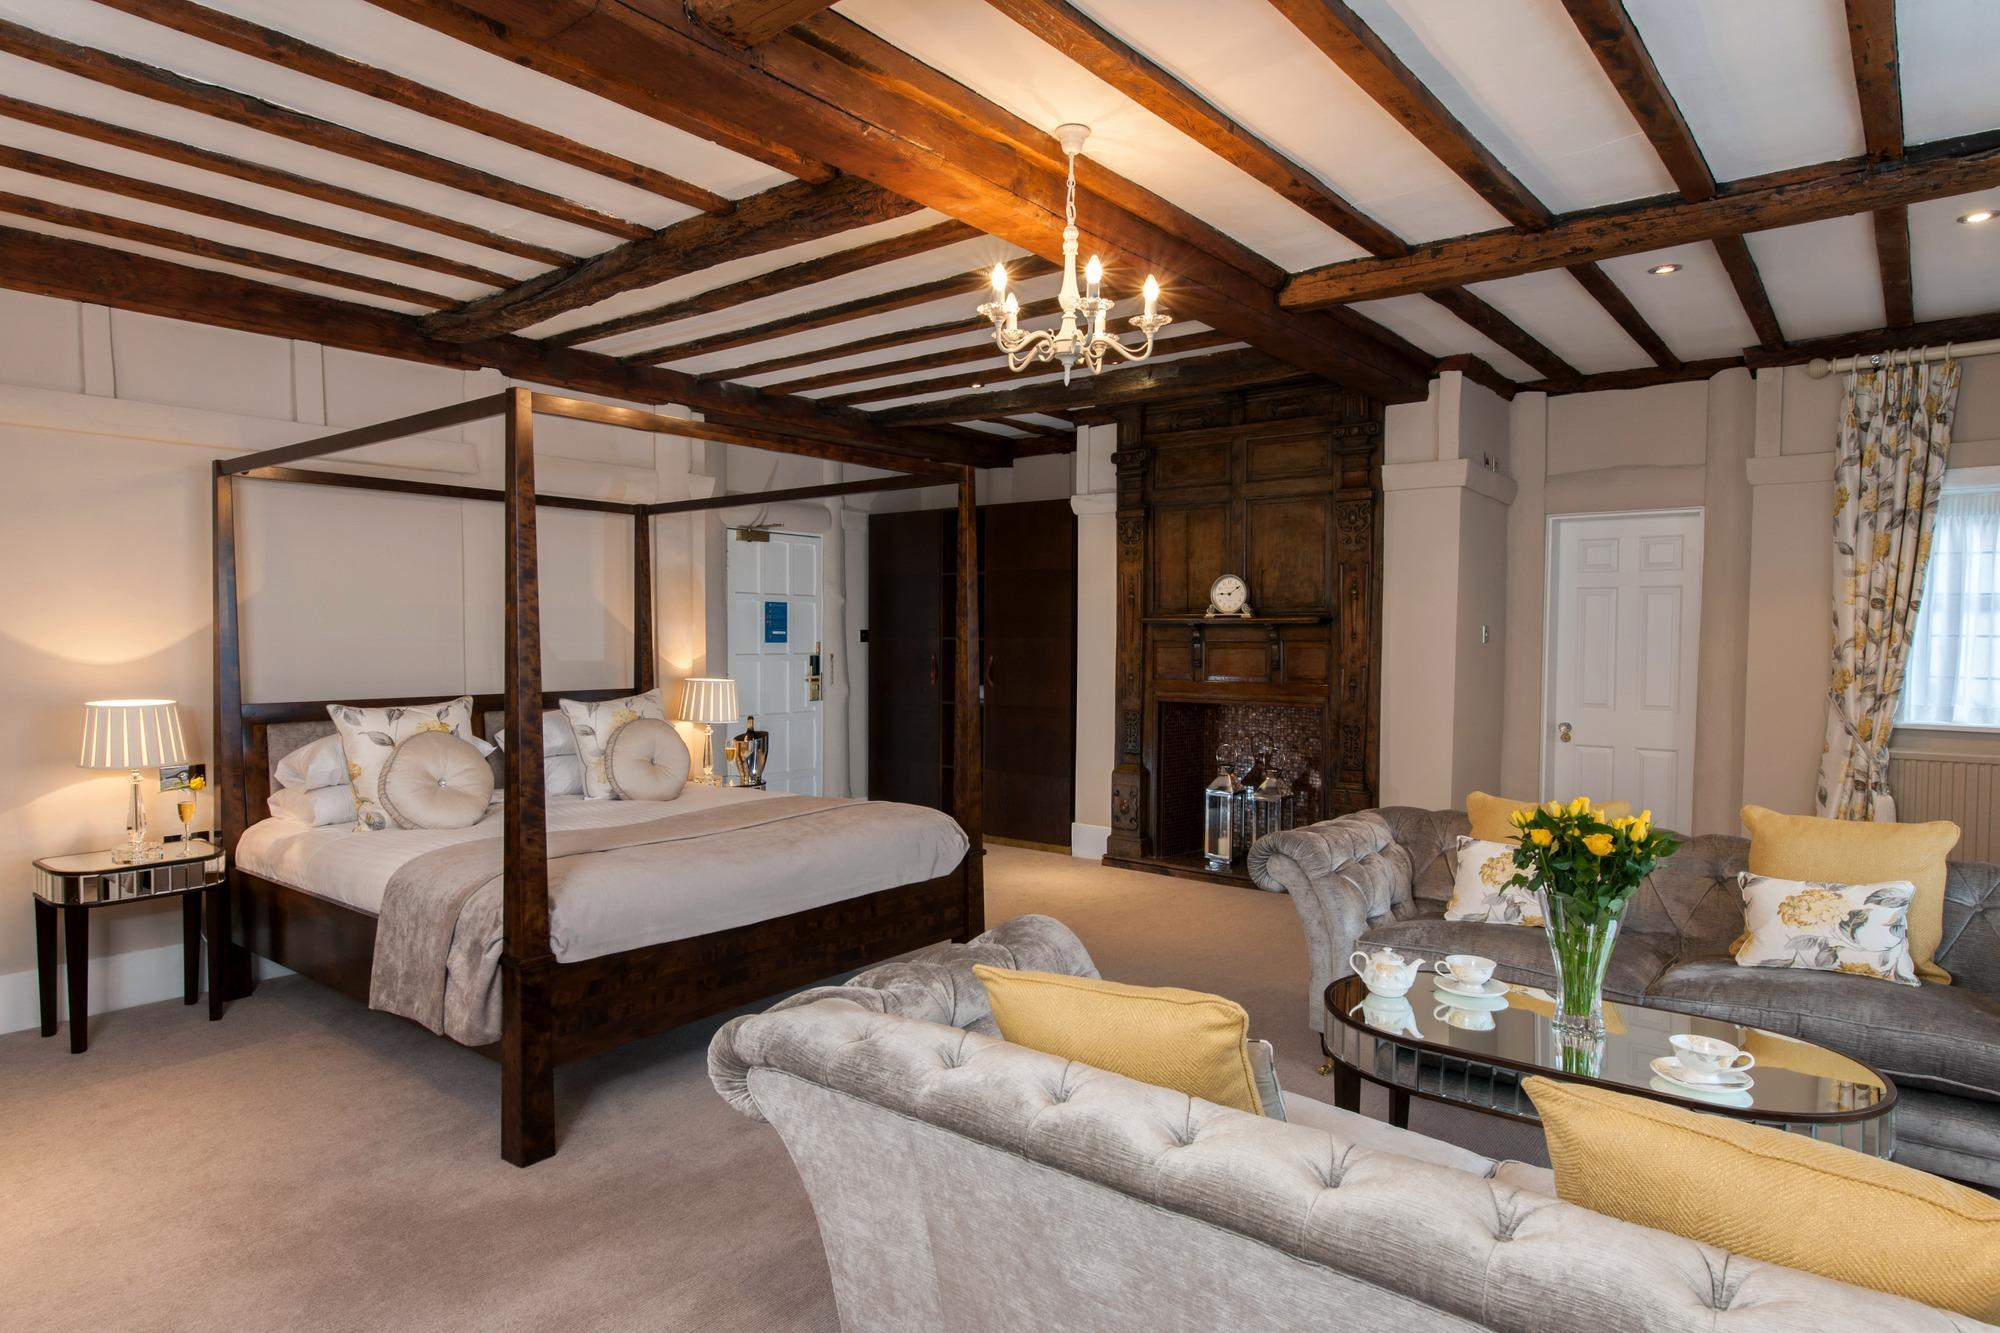 Superb In pictures Laura Ashley unveils its first hotel Photo gallery Retail Week